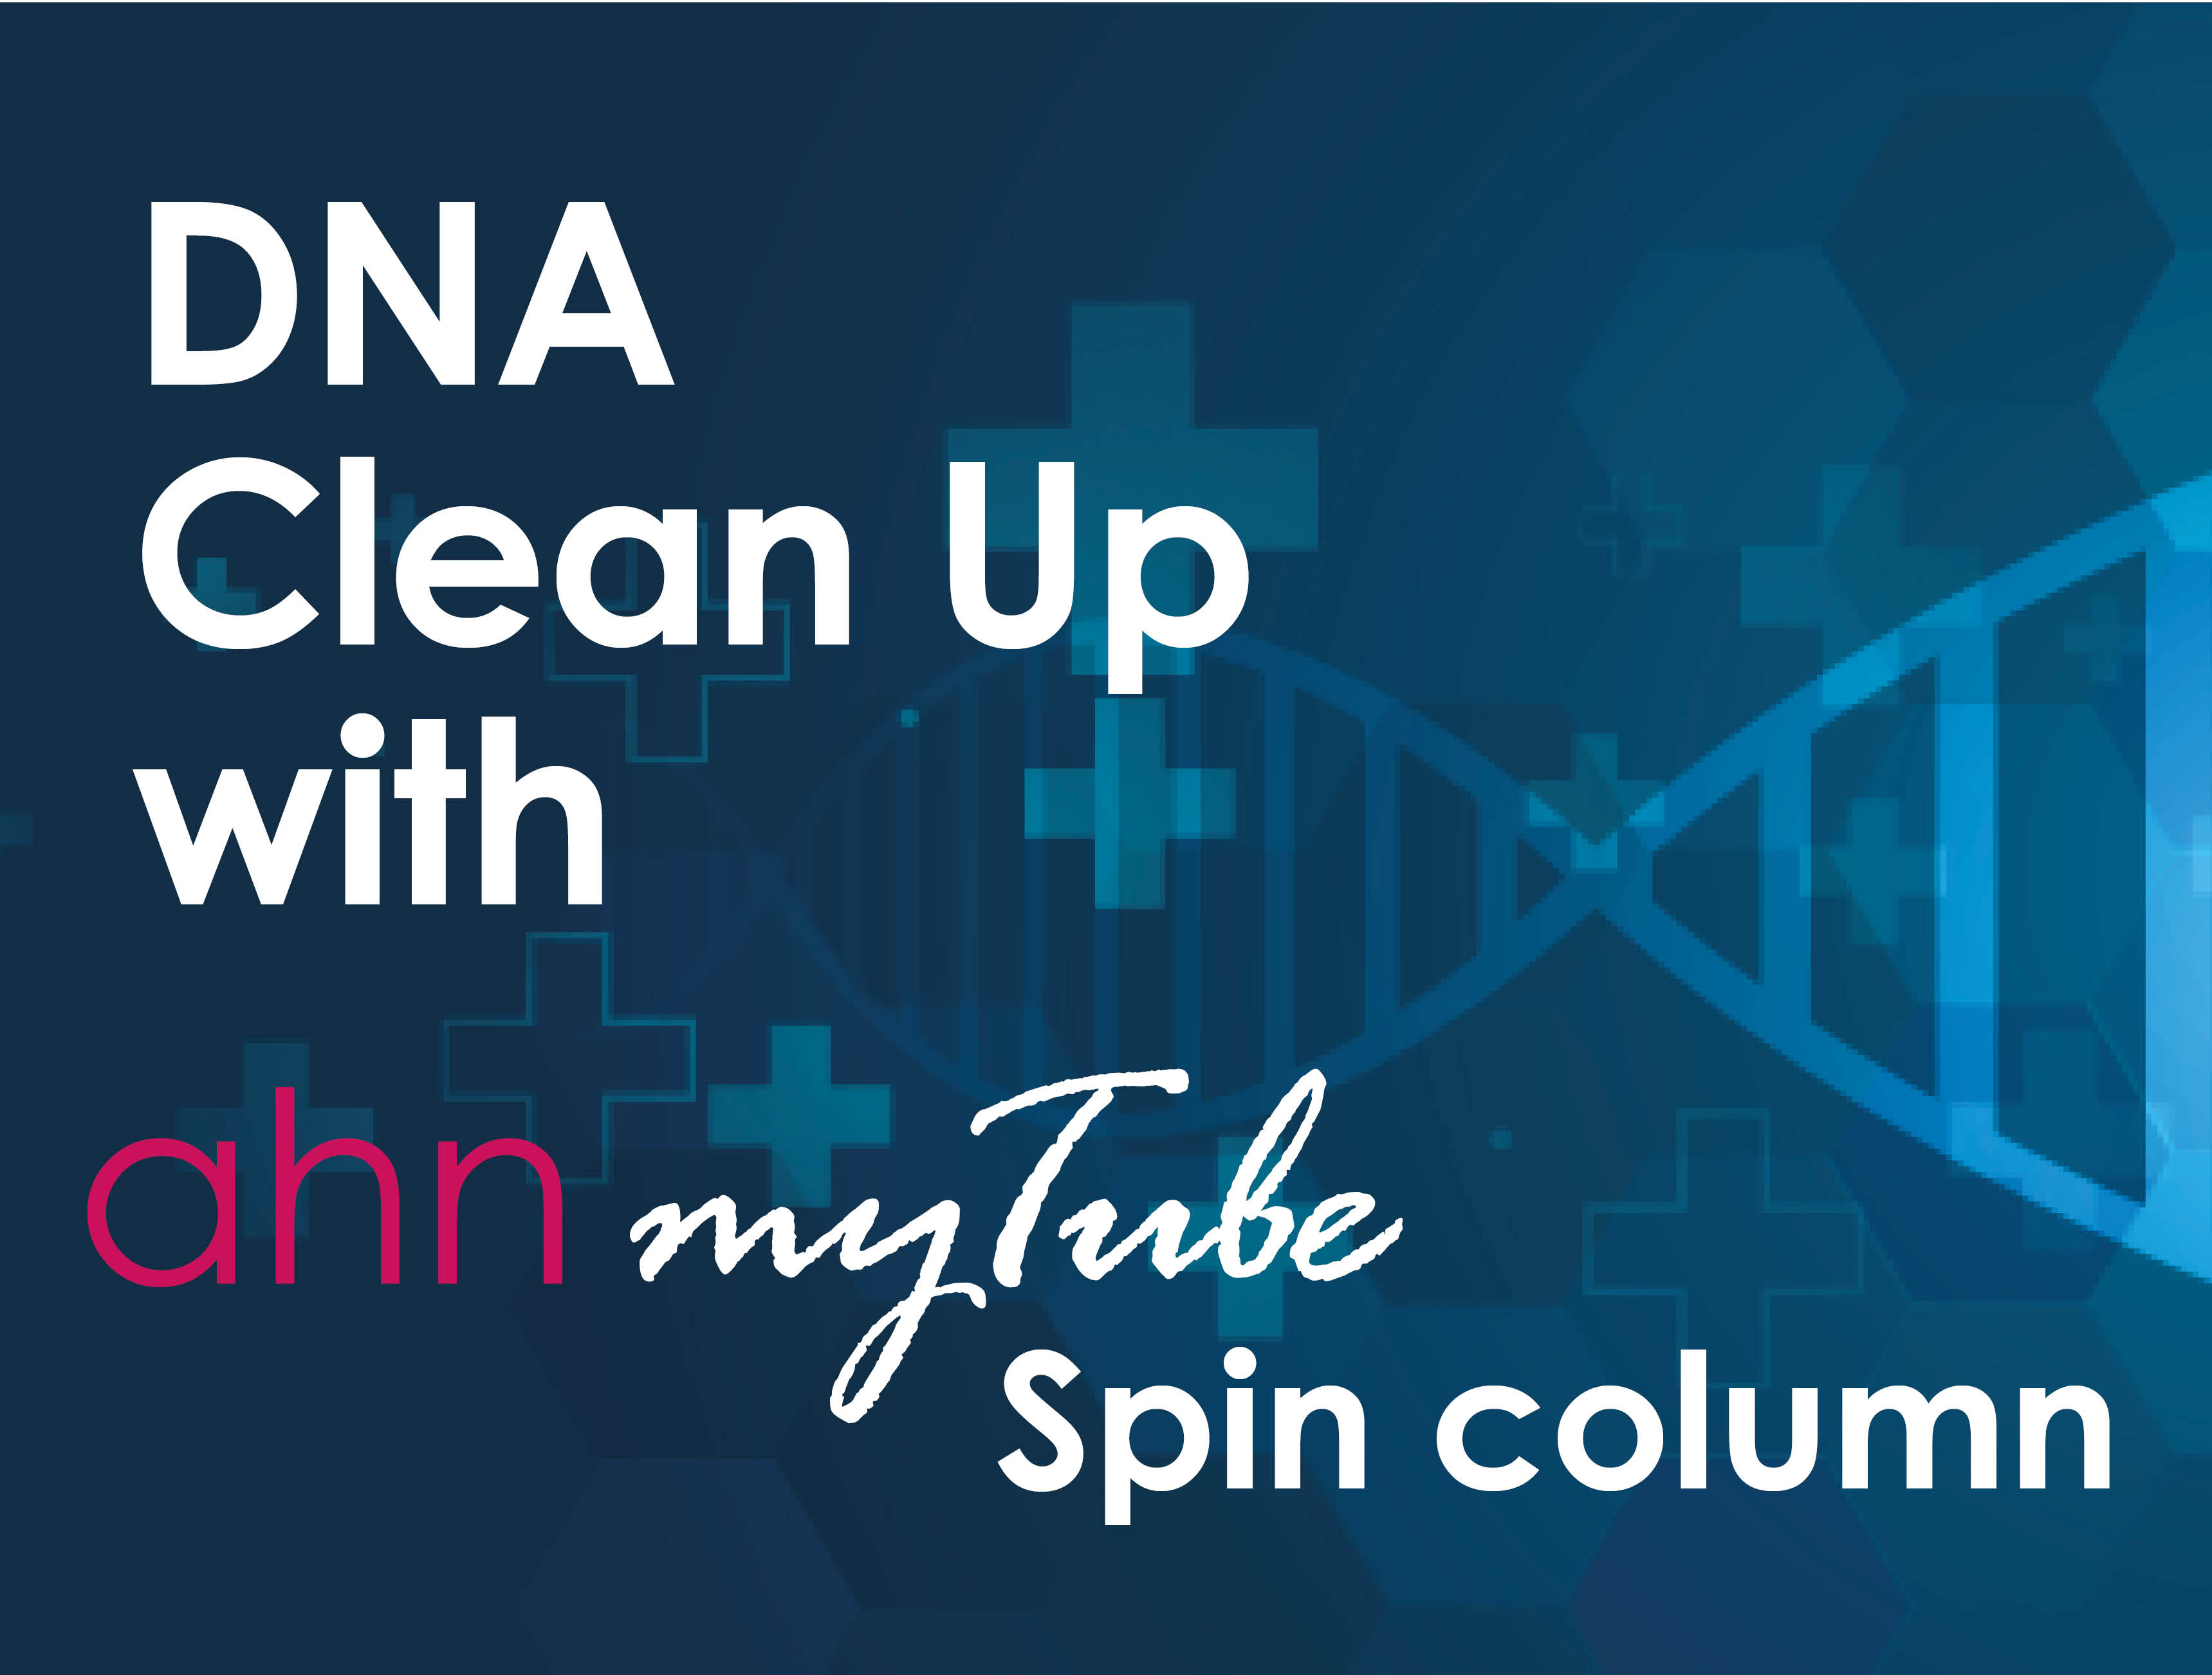 DNA clean up, DNA gel purification